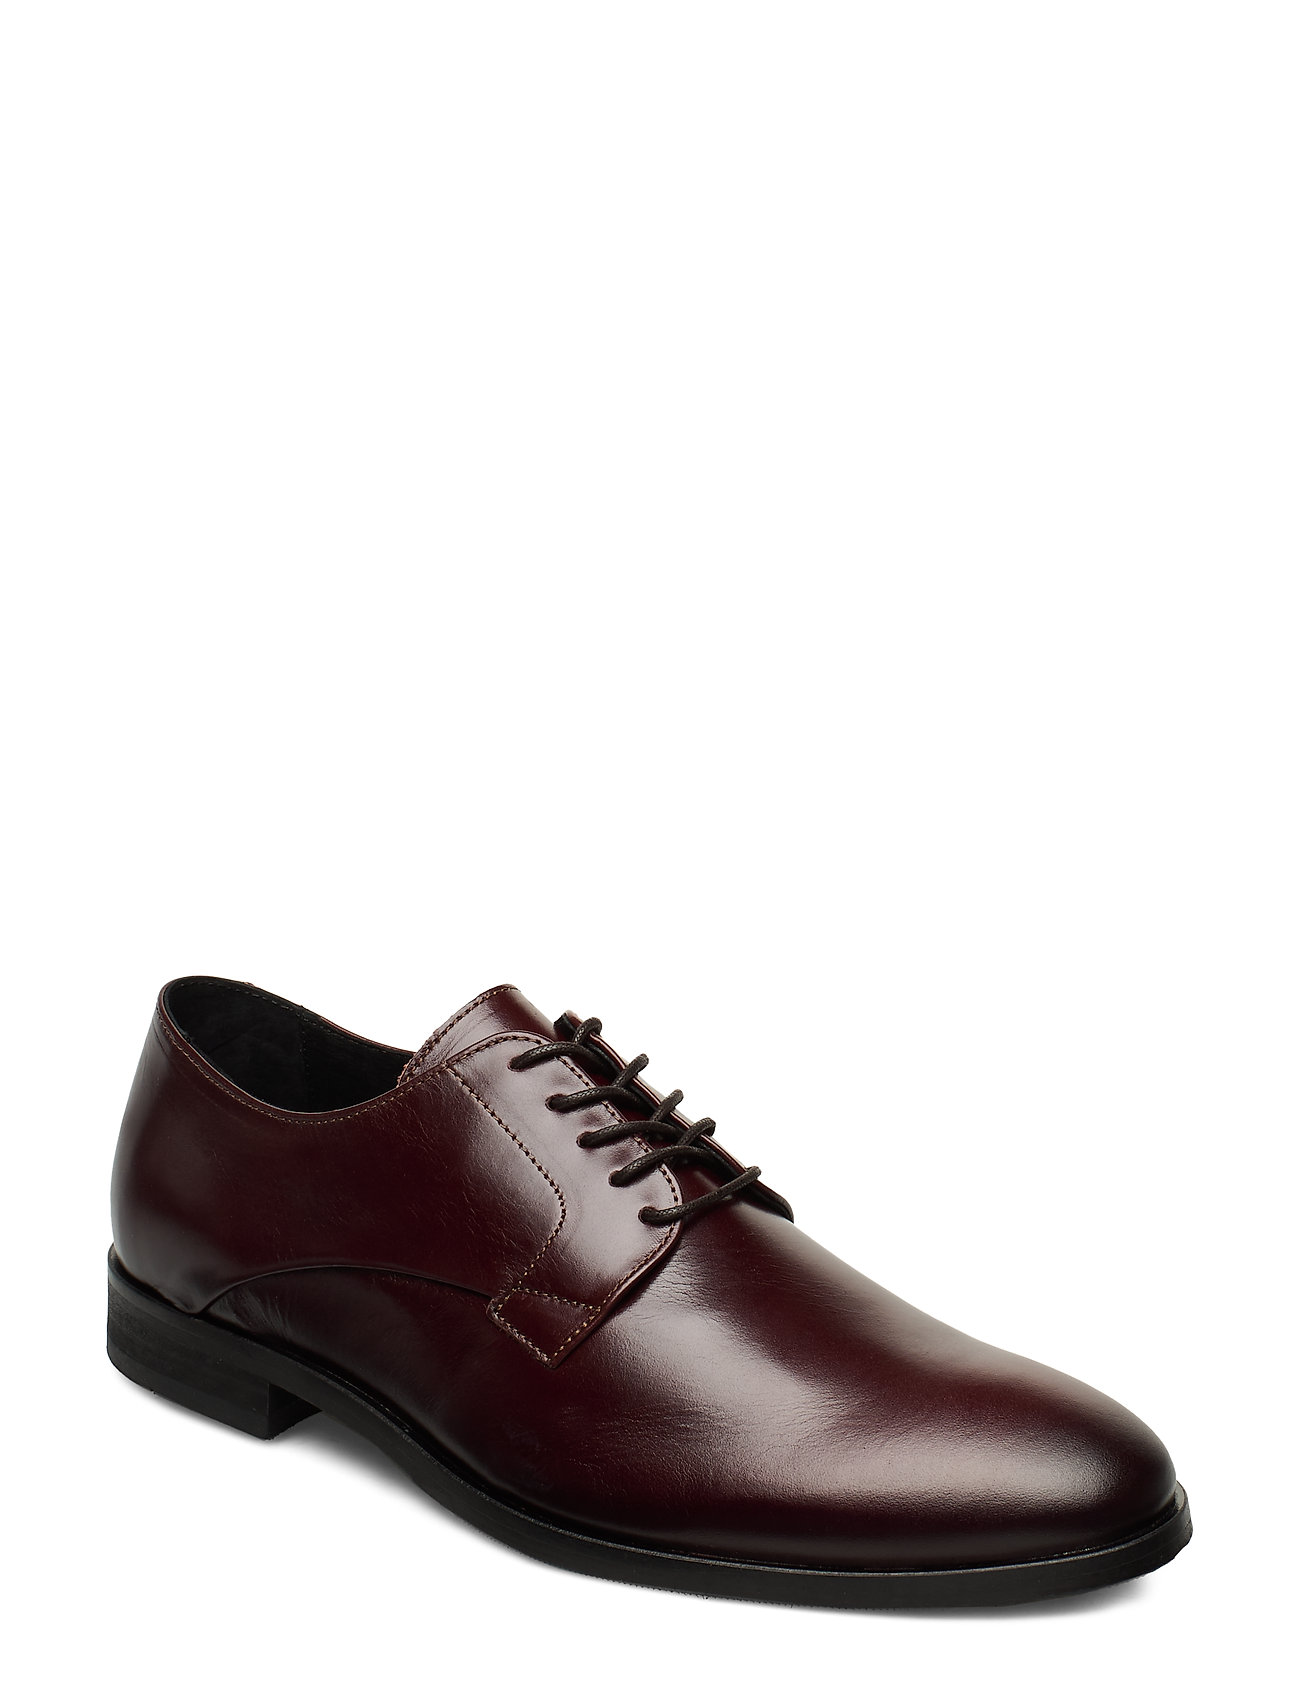 Image of Stb-Rampling L Shoes Business Laced Shoes Brun Shoe The Bear (3279932157)